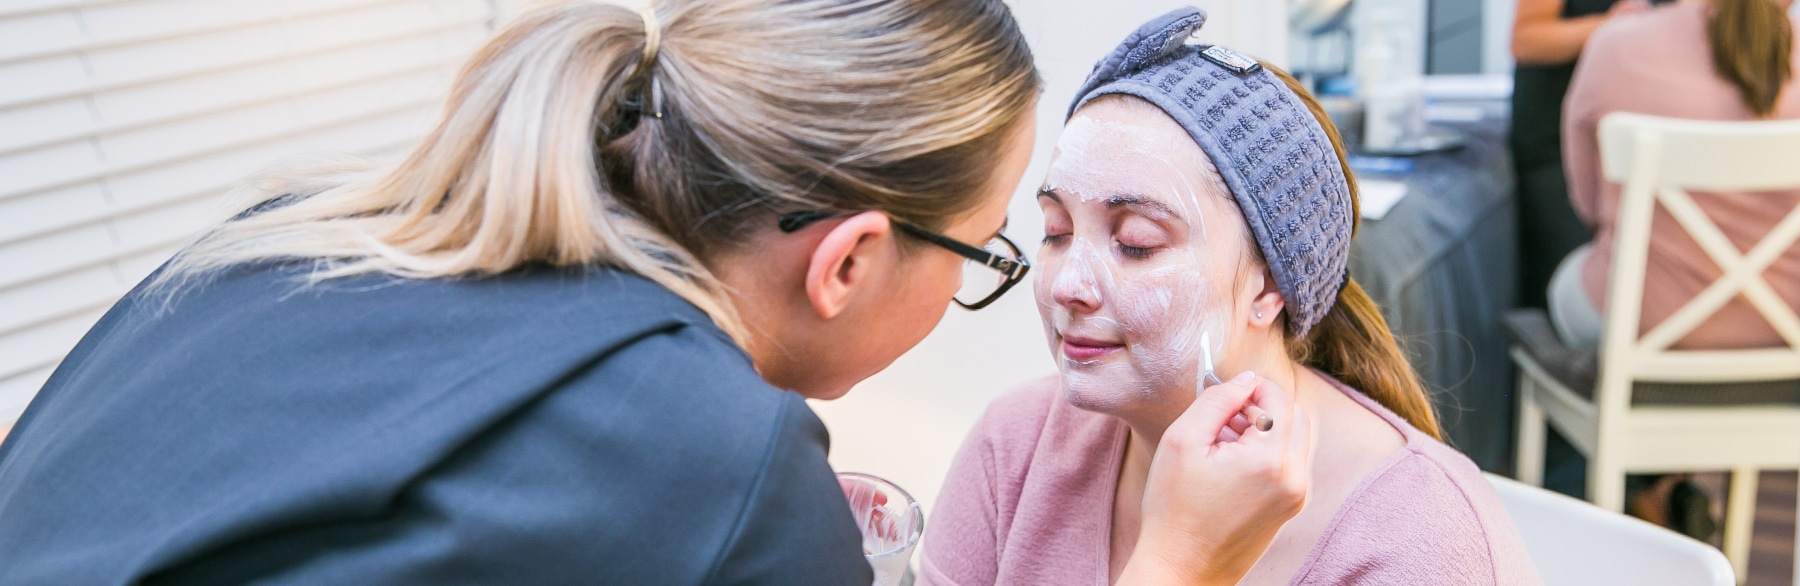 Dermalogica Skin Solver Facial at The Spa Therapy Room